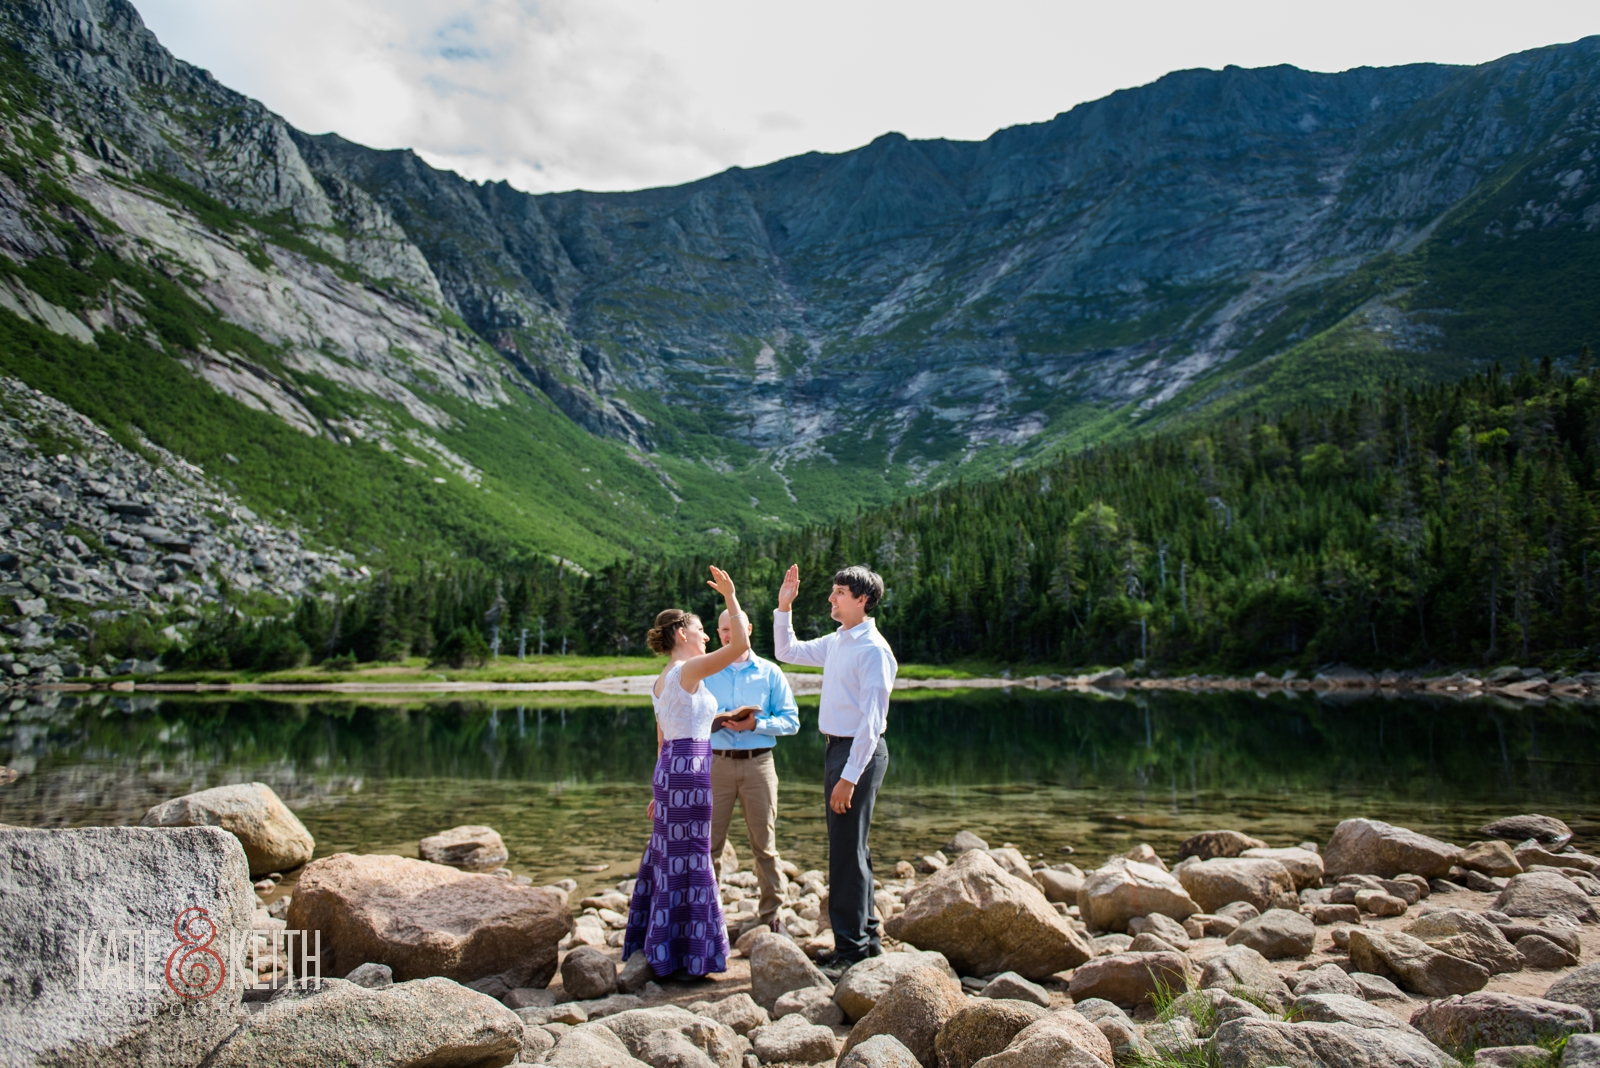 adventure wedding photographers, elopement photographers, Baxter State Park elopement, Mount Katahdin elopement, intimate wedding, outdoor wedding, outdoor elopement, adventure elopement